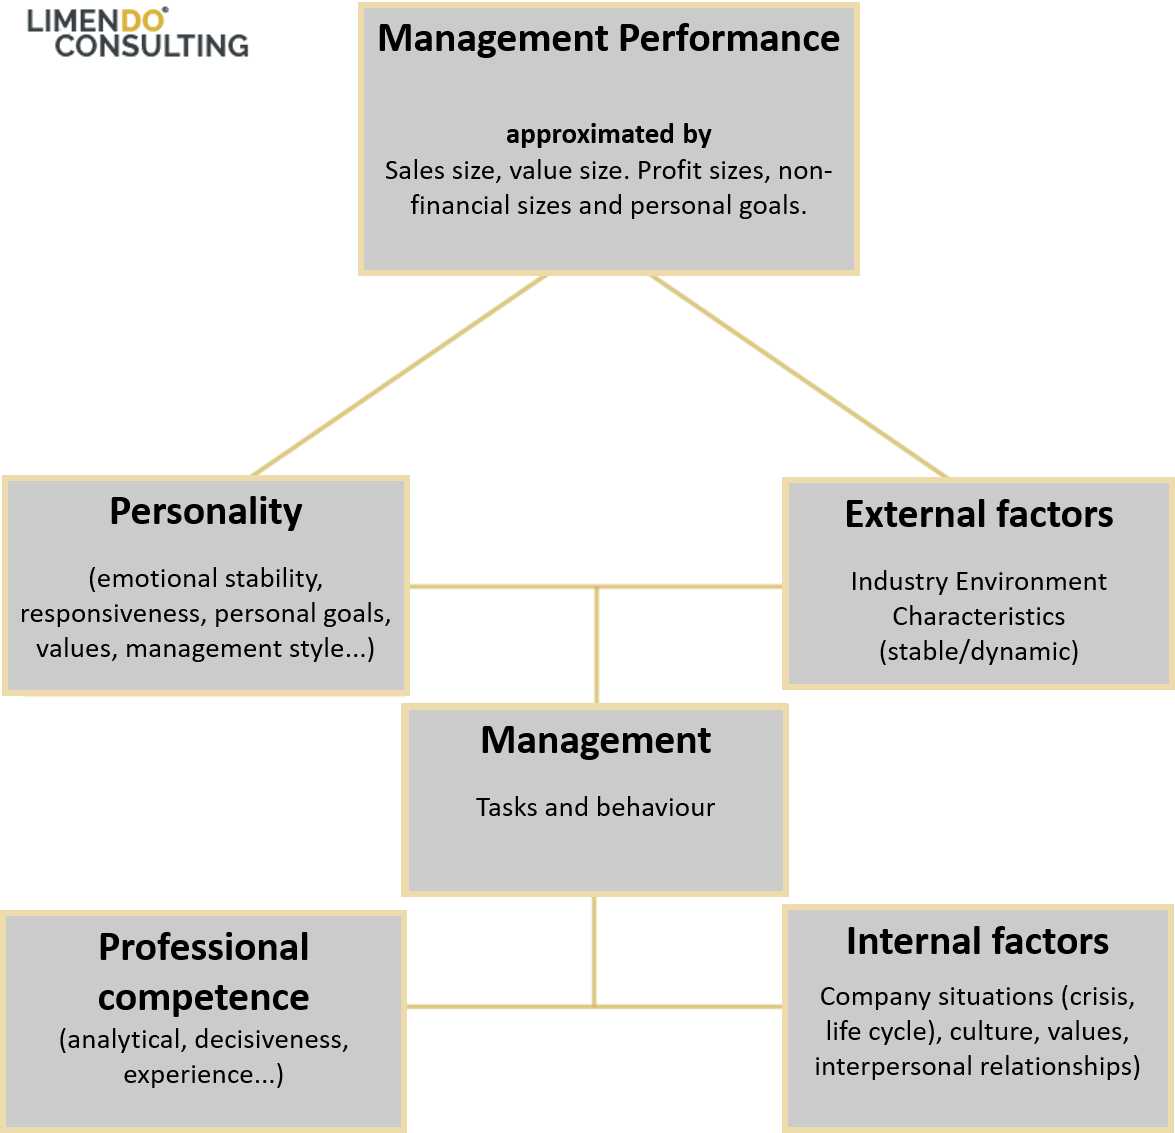 Management performance evaluation from the perspective of equity providers